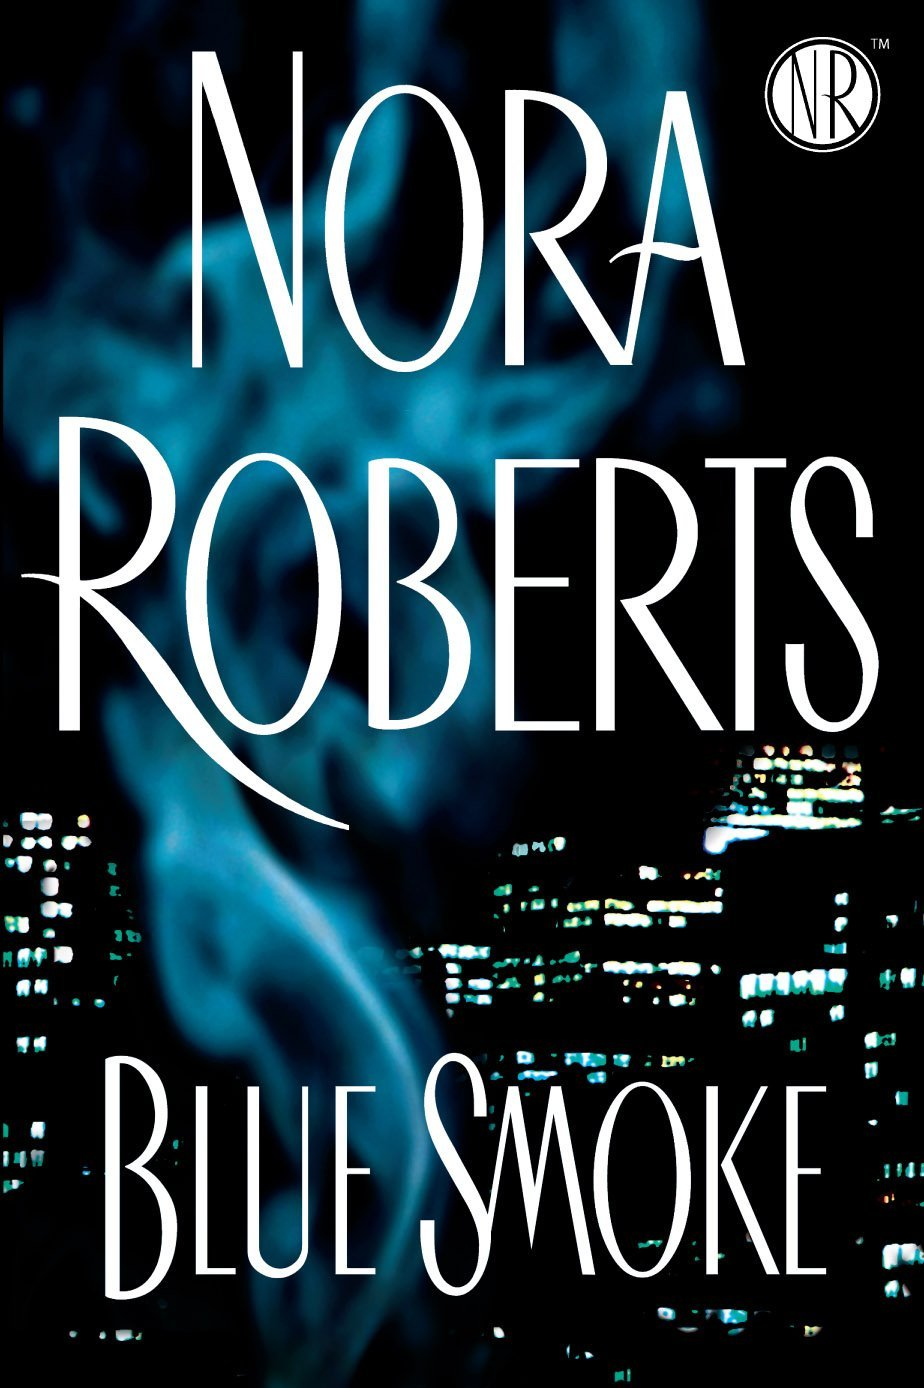 nora roberts blue smoke cover